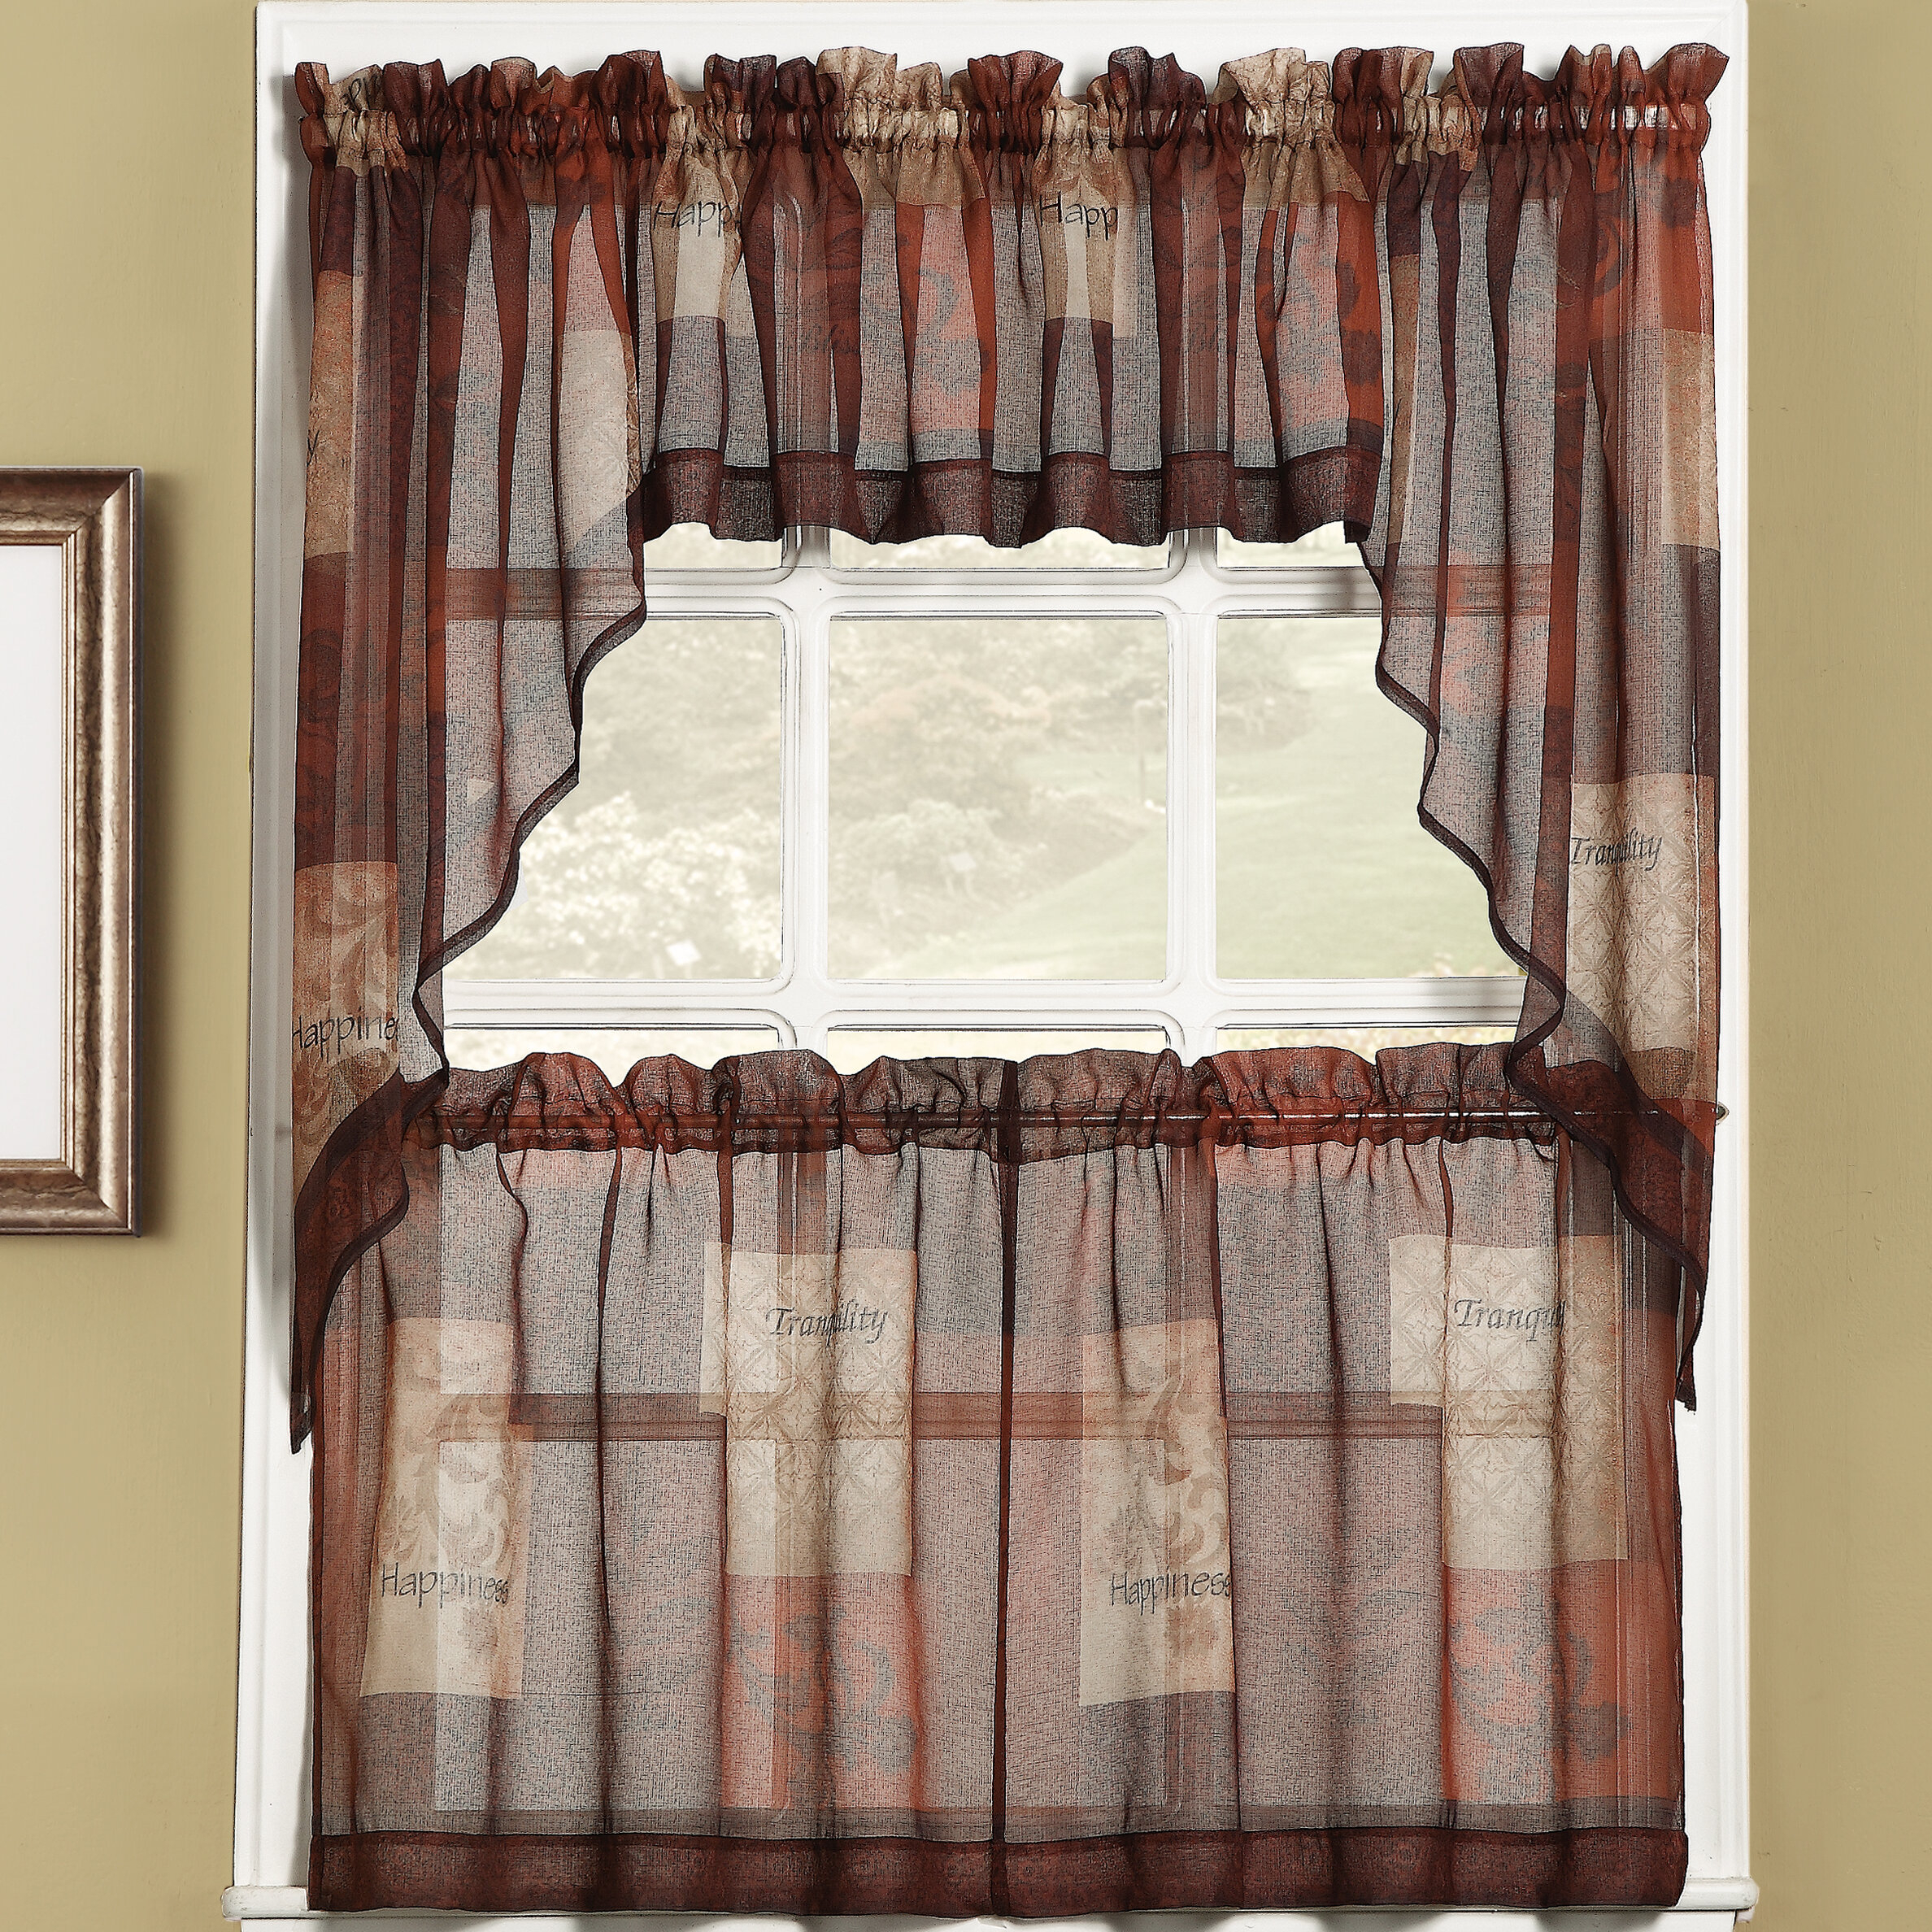 Bigelow Cafe Curtains Inside Sheer Lace Elongated Kitchen Curtain Tier Pairs (View 6 of 20)